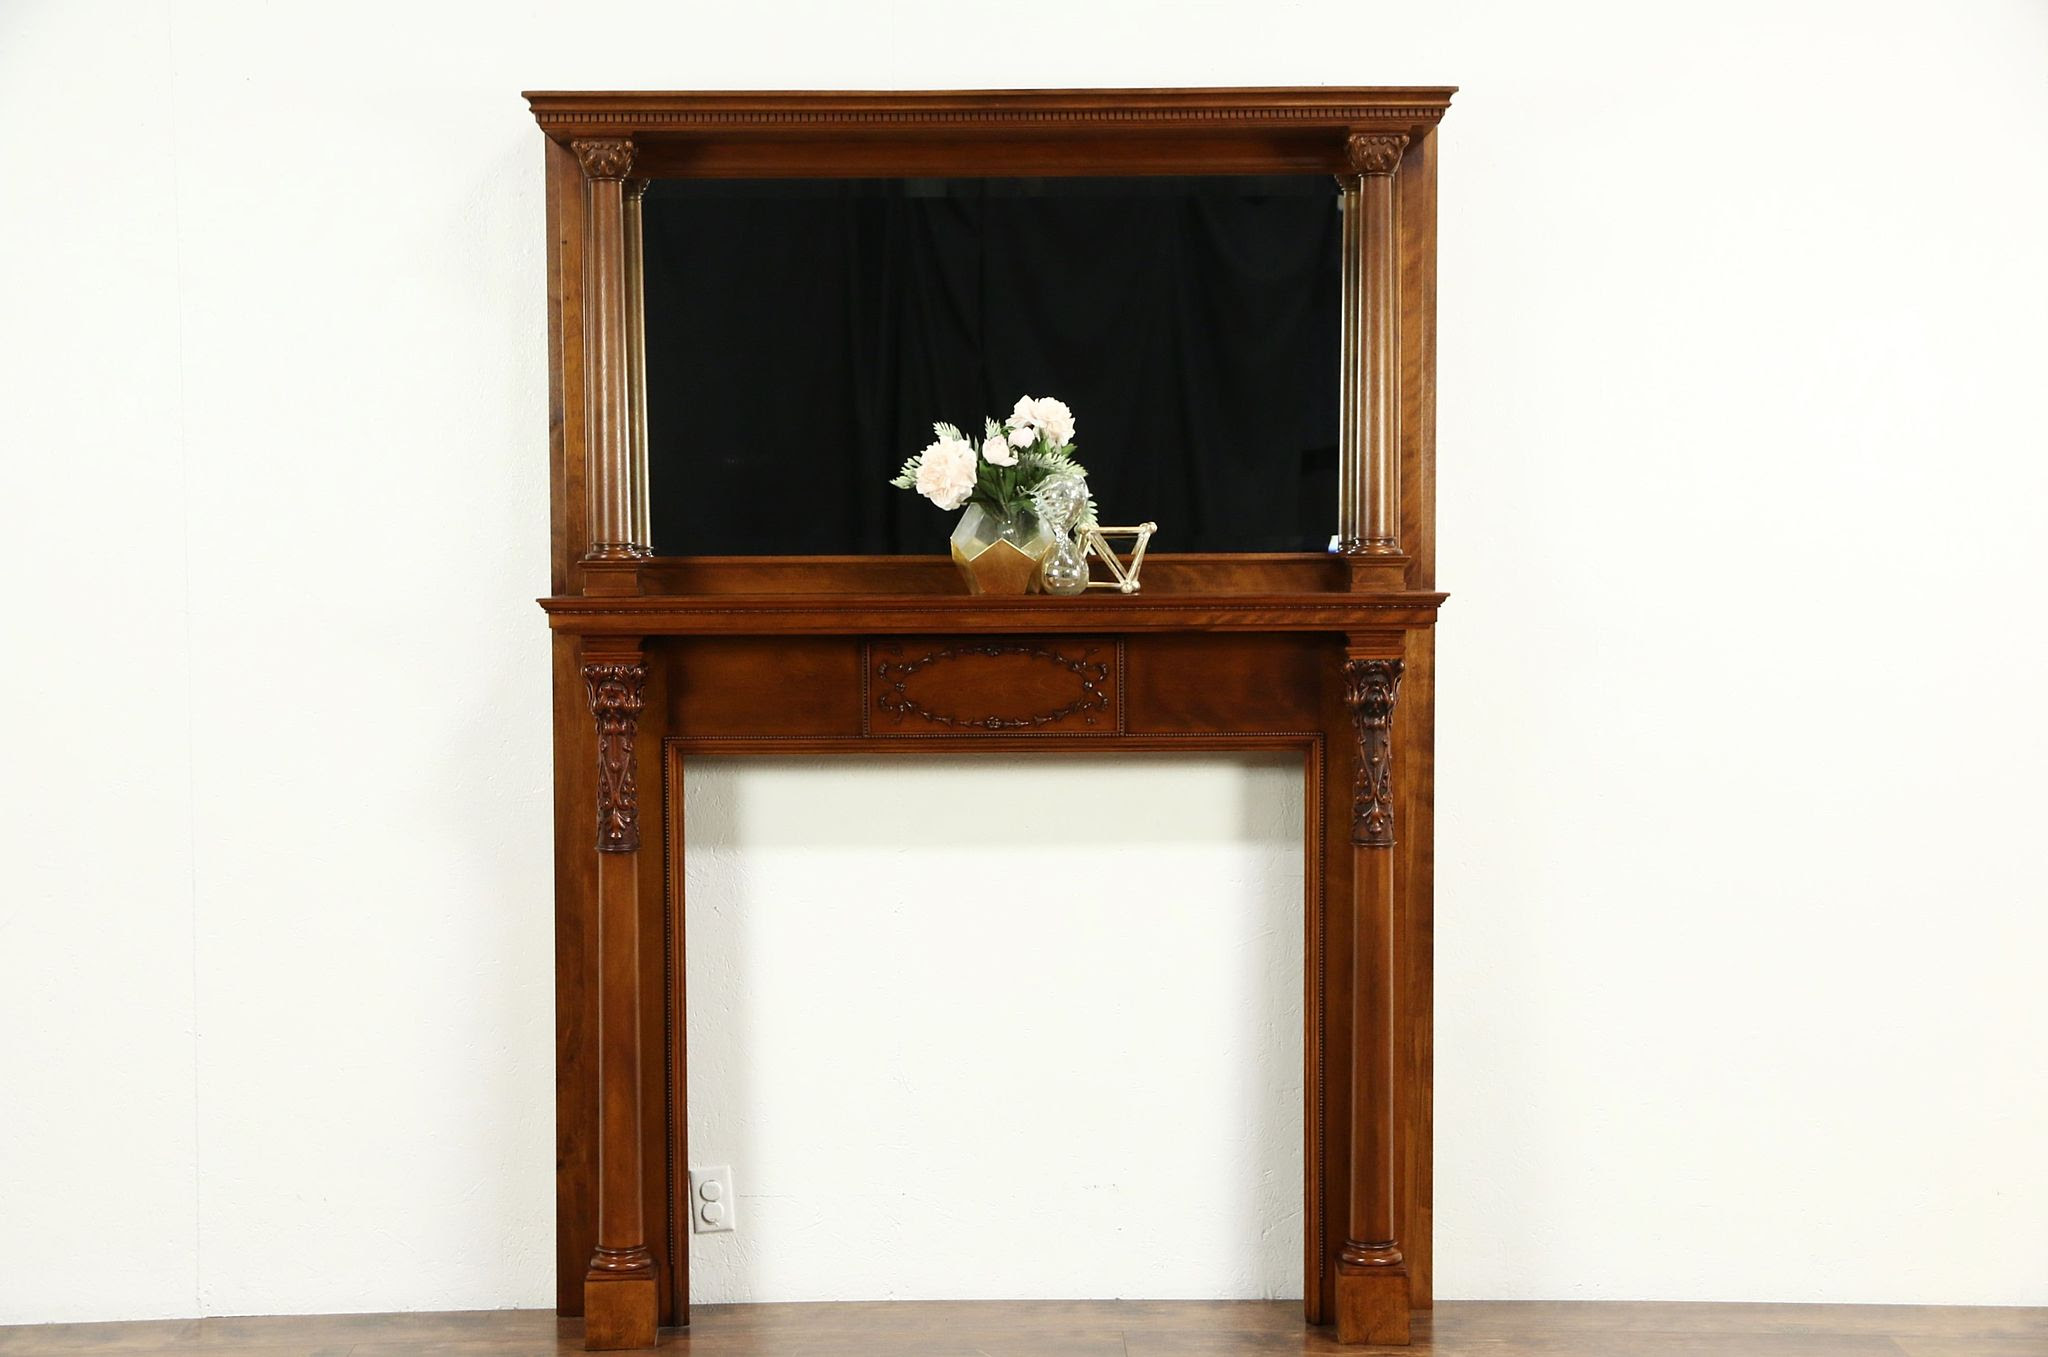 Sold Fireplace Mantel Mirror 1895 Antique Architectural Salvage